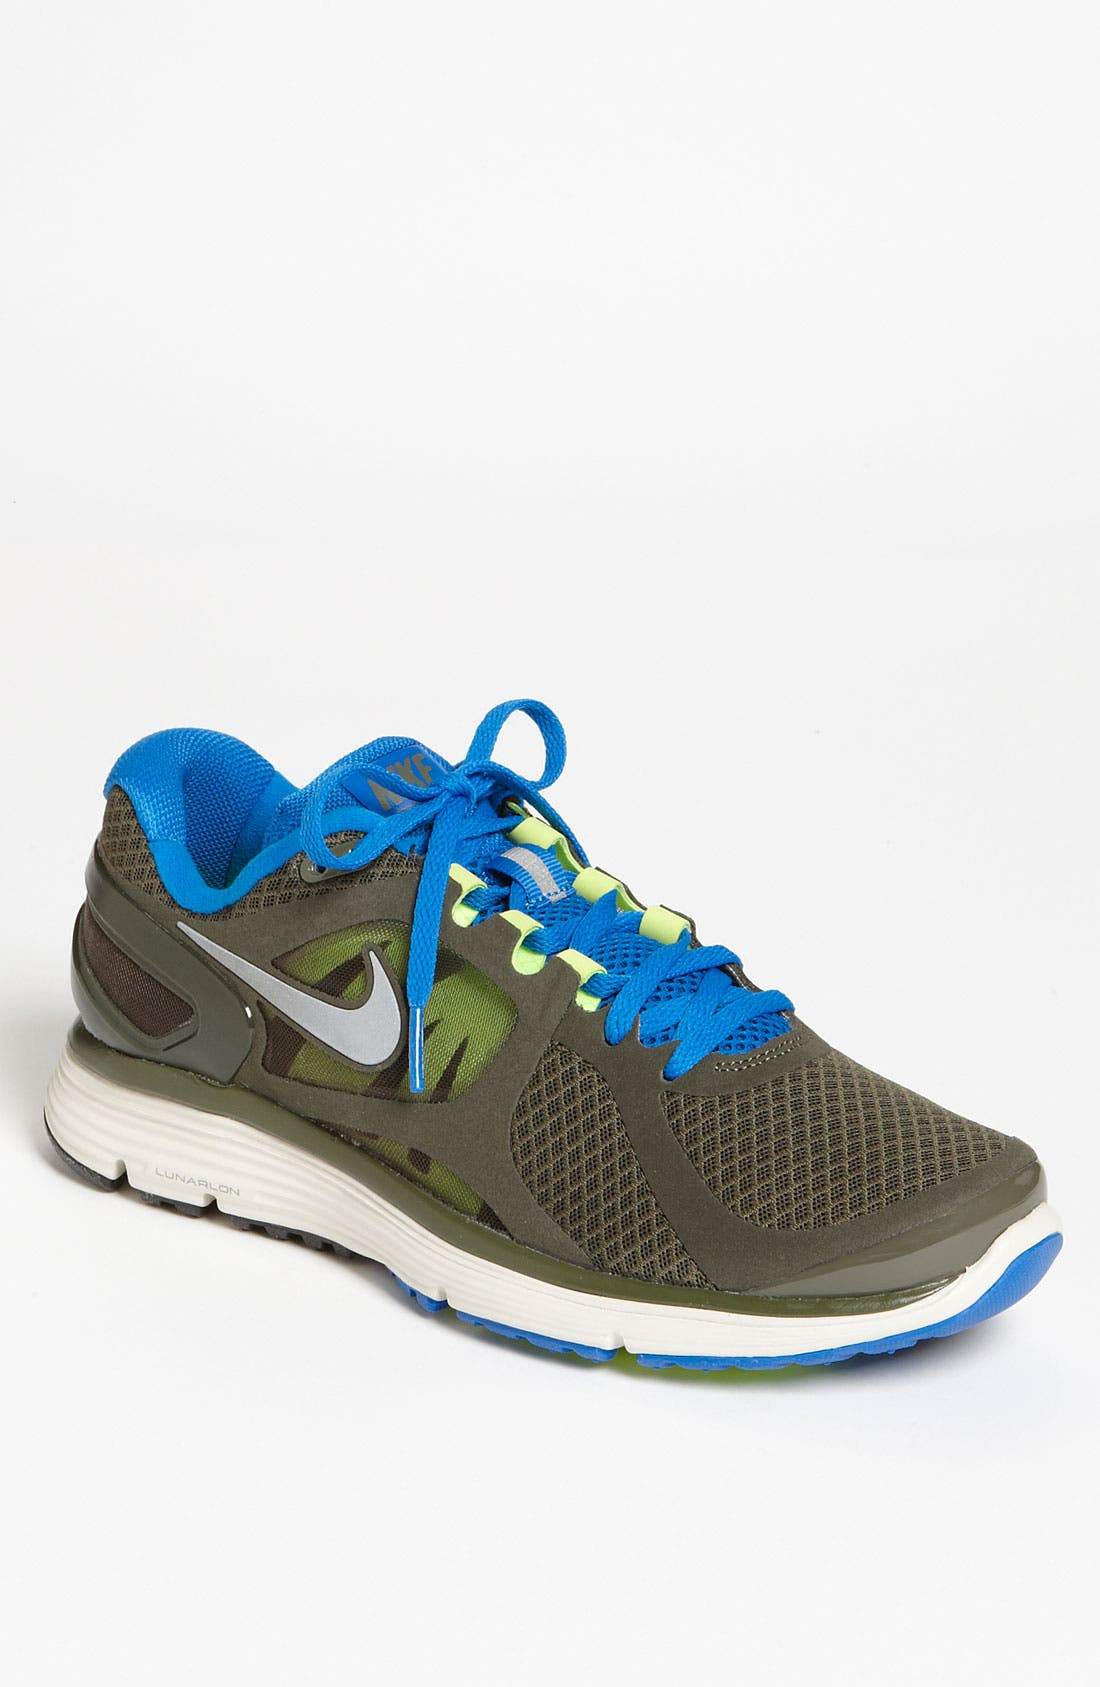 Alternate Image 1 Selected - Nike 'LunarEclipse+ 2' Running Shoe (Men)